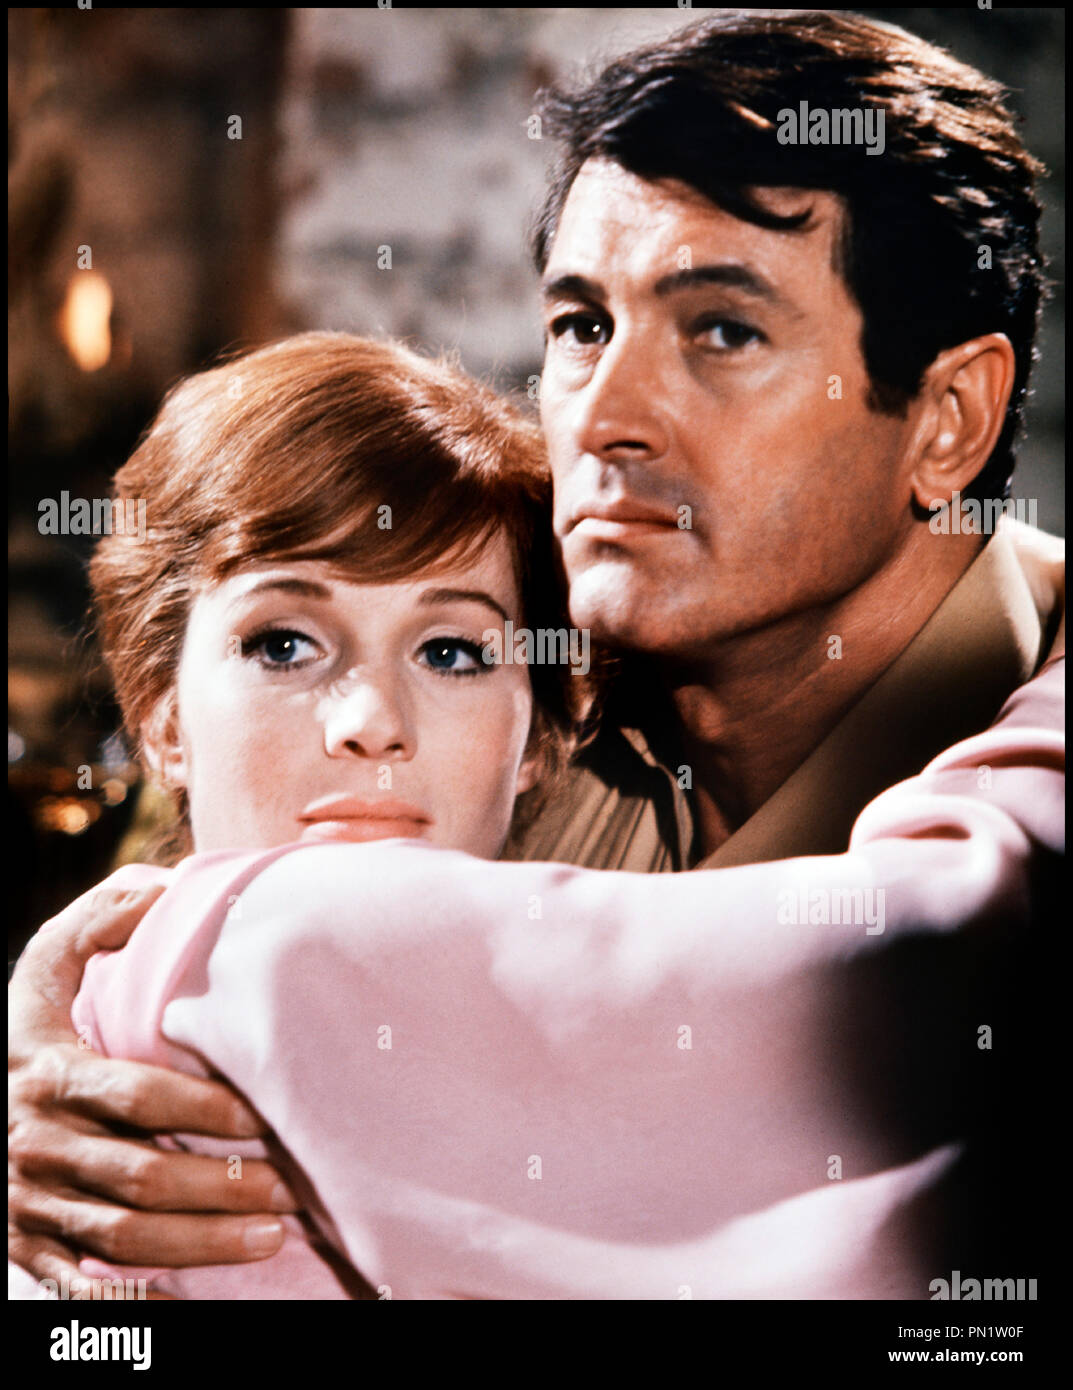 Prod DB © Paramount Pictures / DR DARLING LILI (DARLING LILI) de Blake Edwards 1970 USA avec Julie Andrews et Rock Hudson couple, tendresse - Stock Image